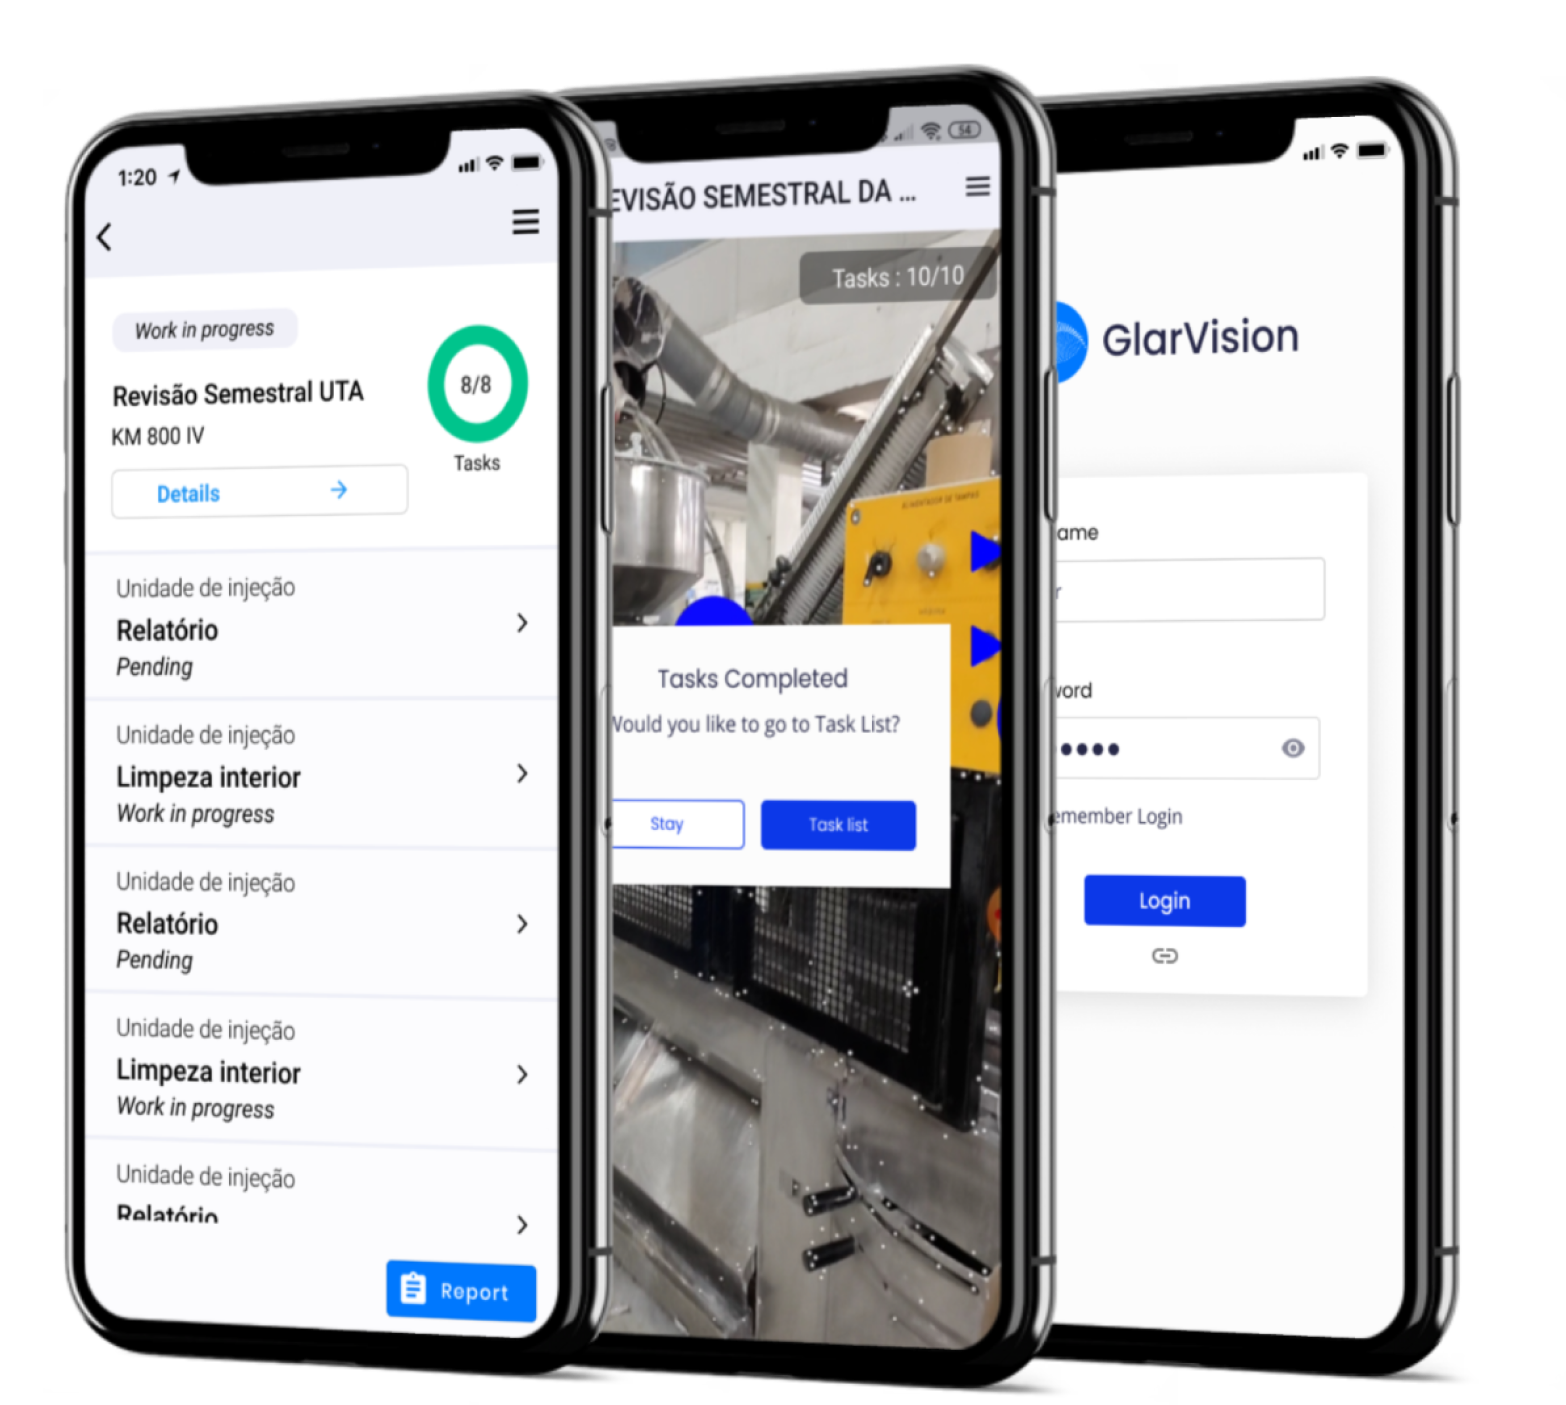 GlarVision: A new reality for an Augmented and Connected worker